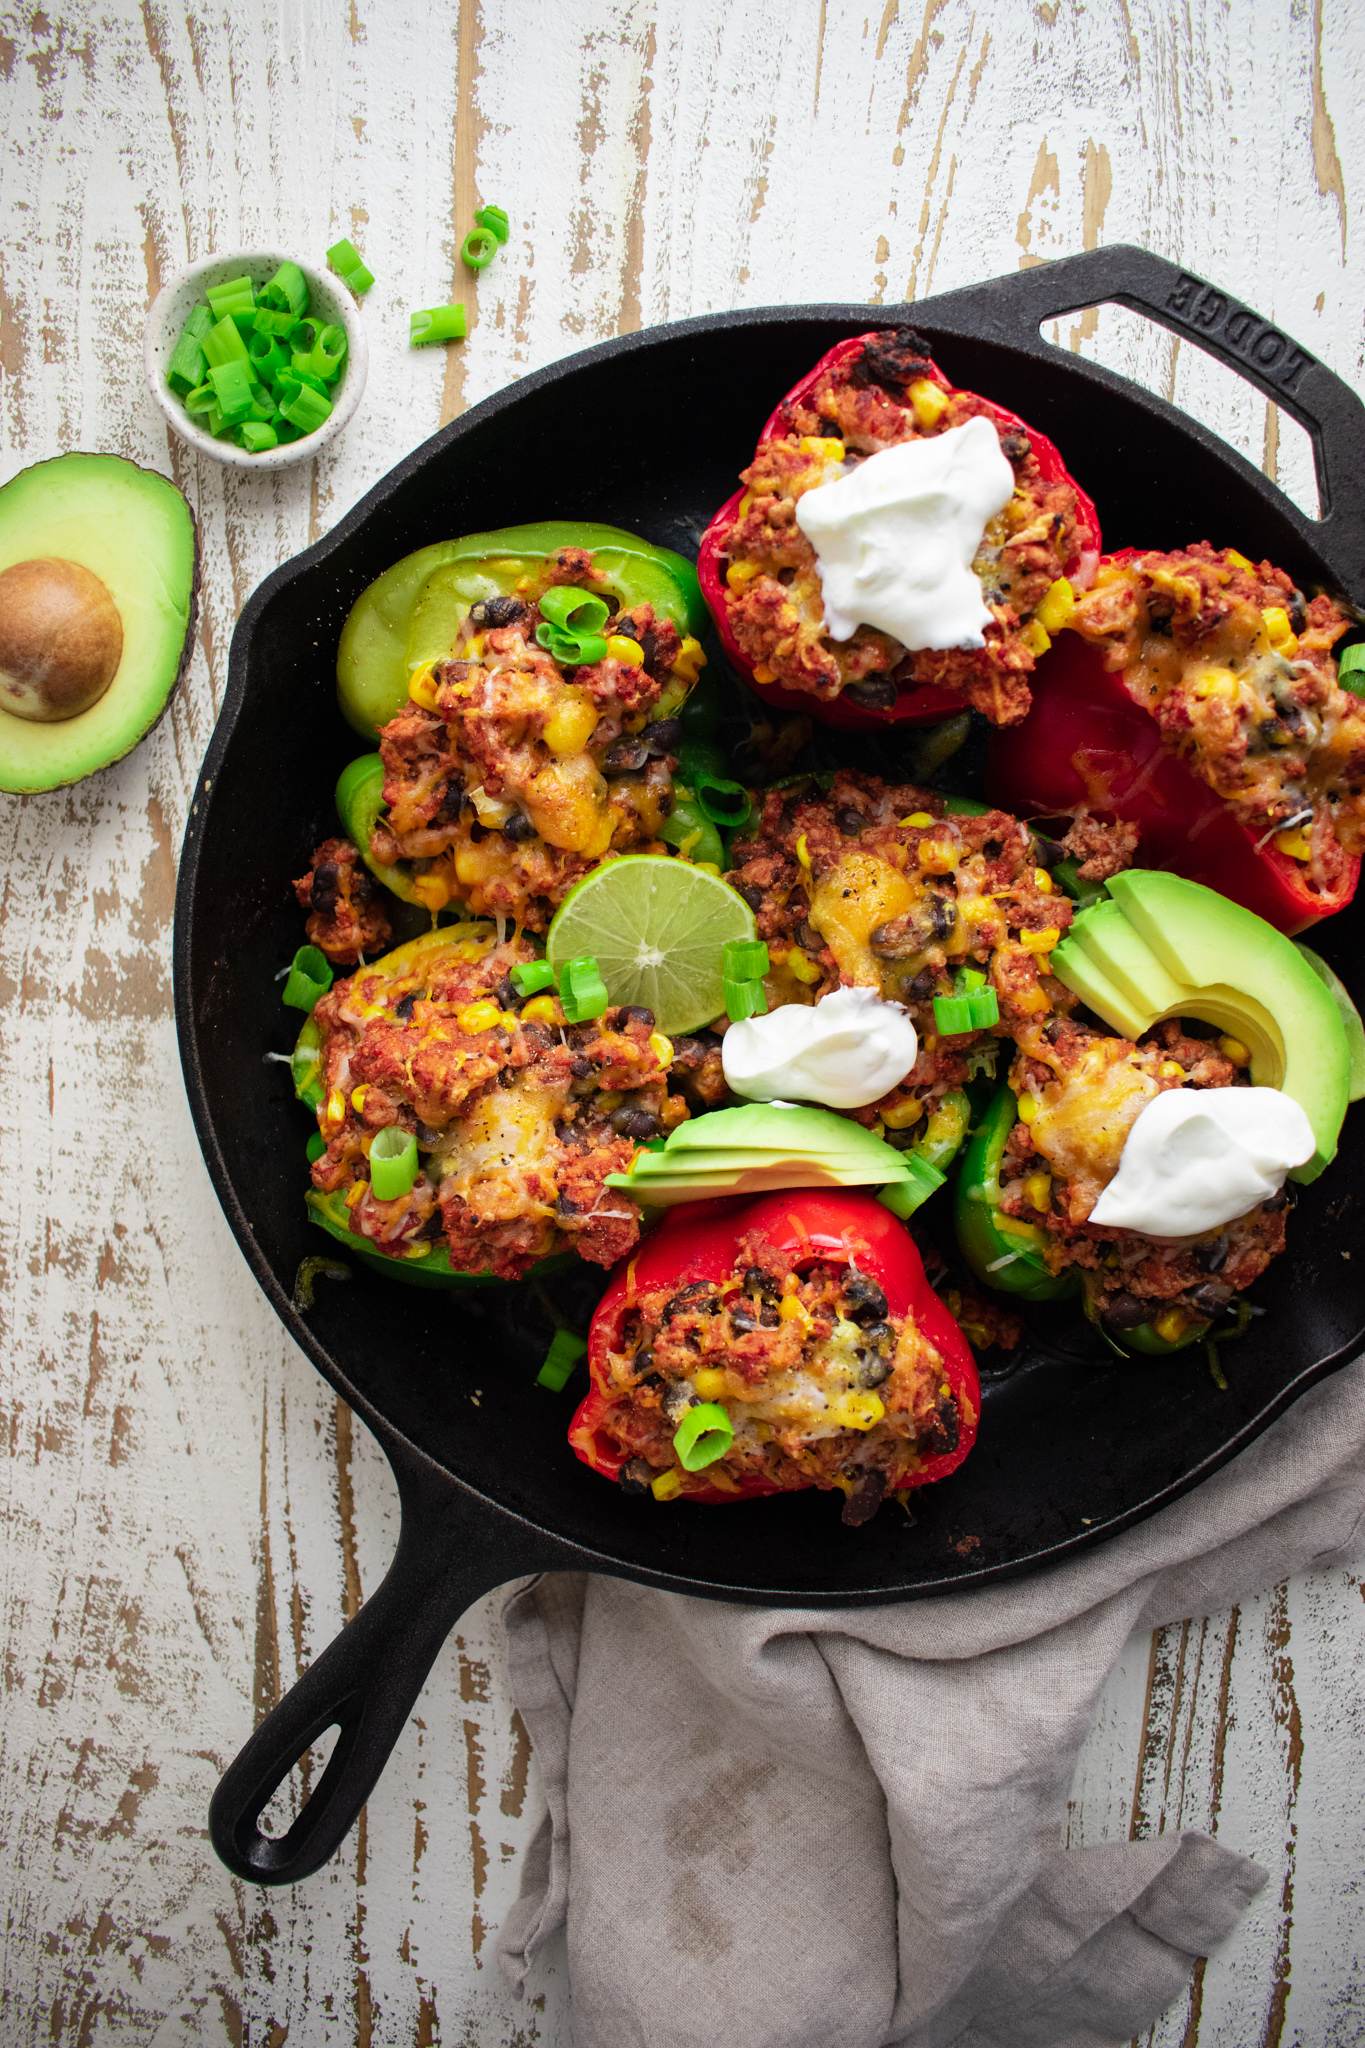 birds eye view of stuffed peppers in a cast iron skillet topped with avocados scallions and limes